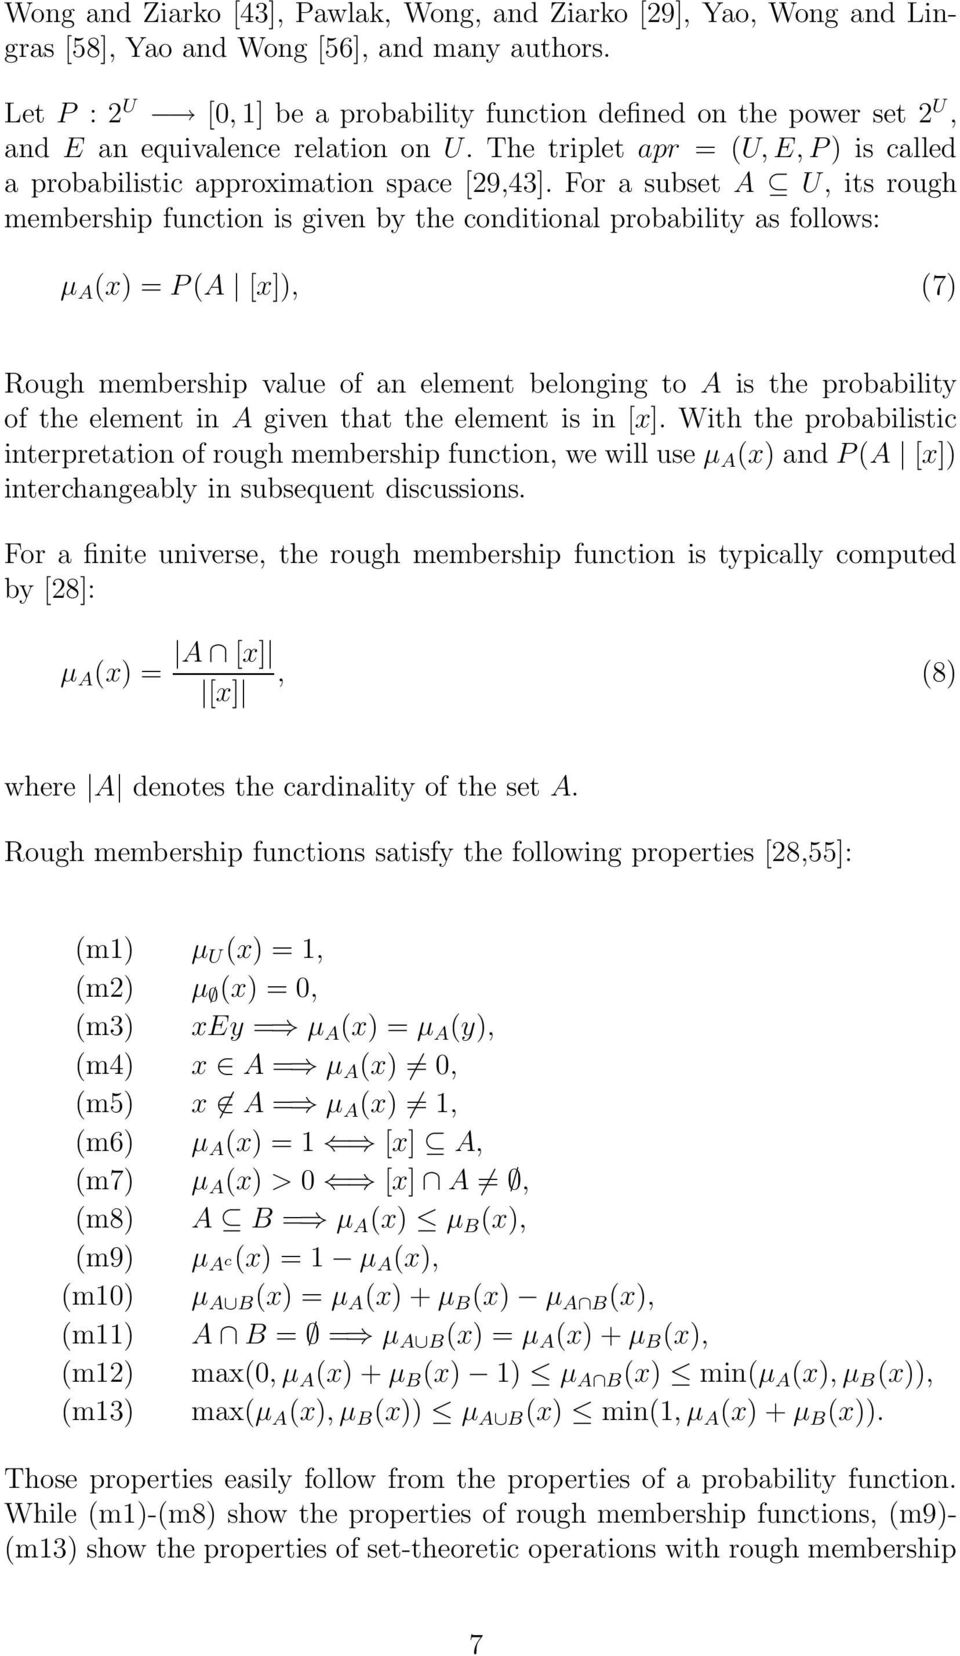 For a subset A U, its rough membership function is given by the conditional probability as follows: µ A (x) = P(A [x]), (7) Rough membership value of an element belonging to A is the probability of